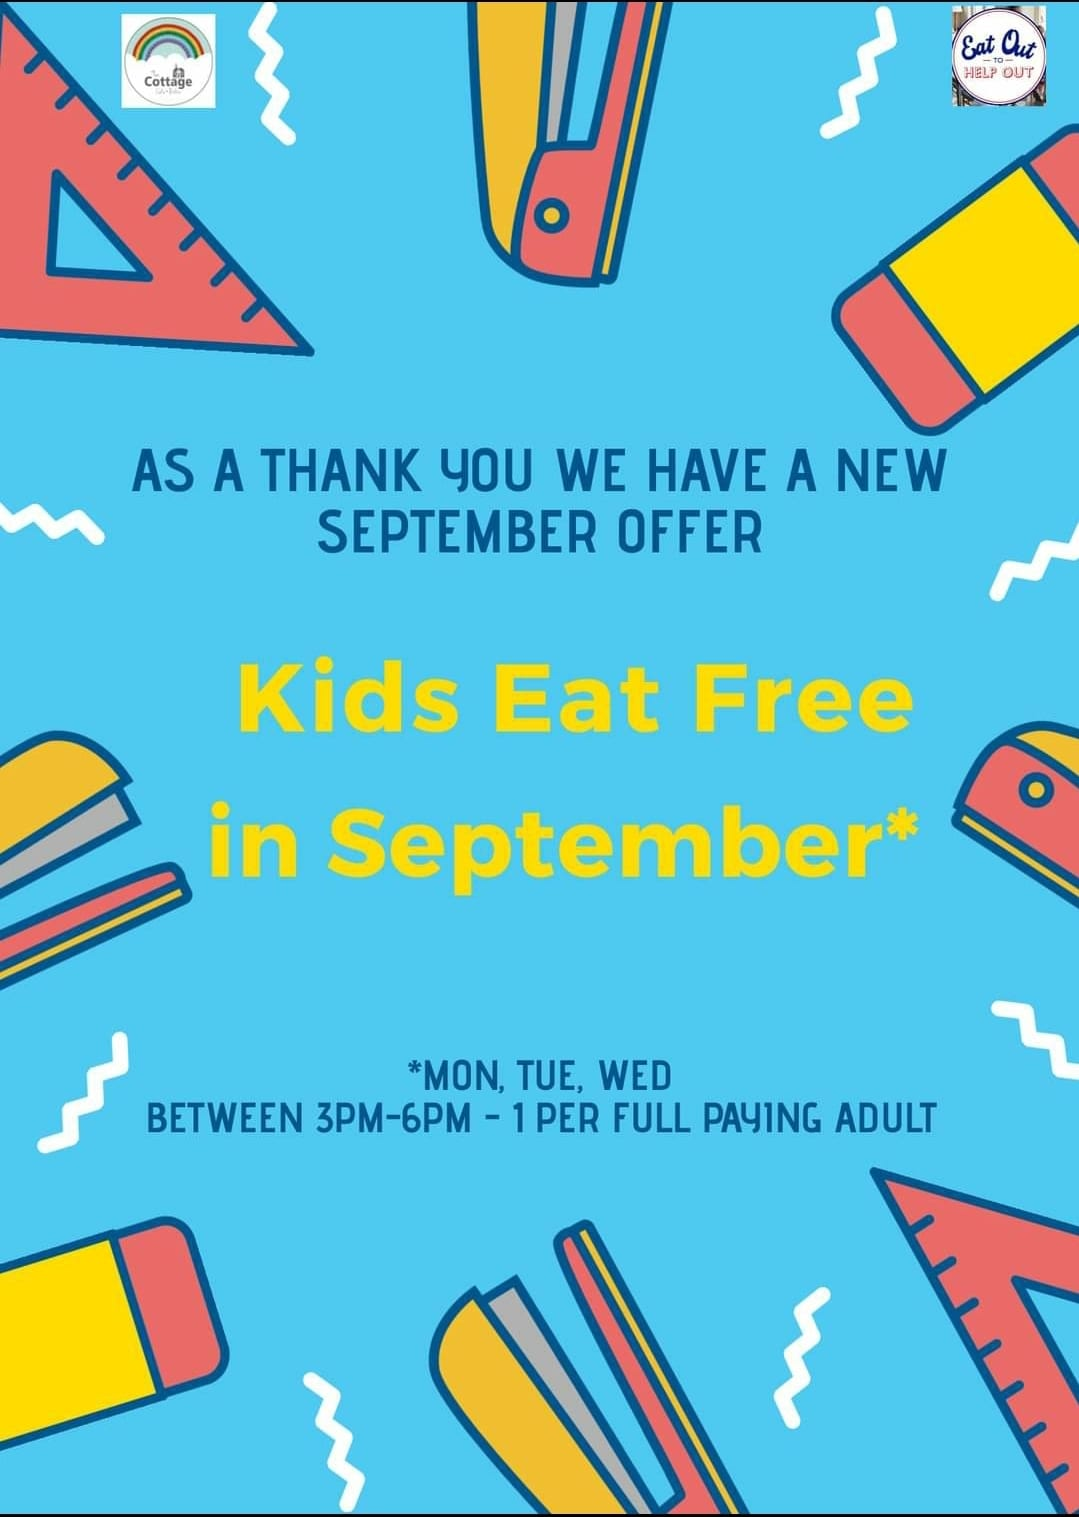 Kids eat free in September at The Cottage Cafe